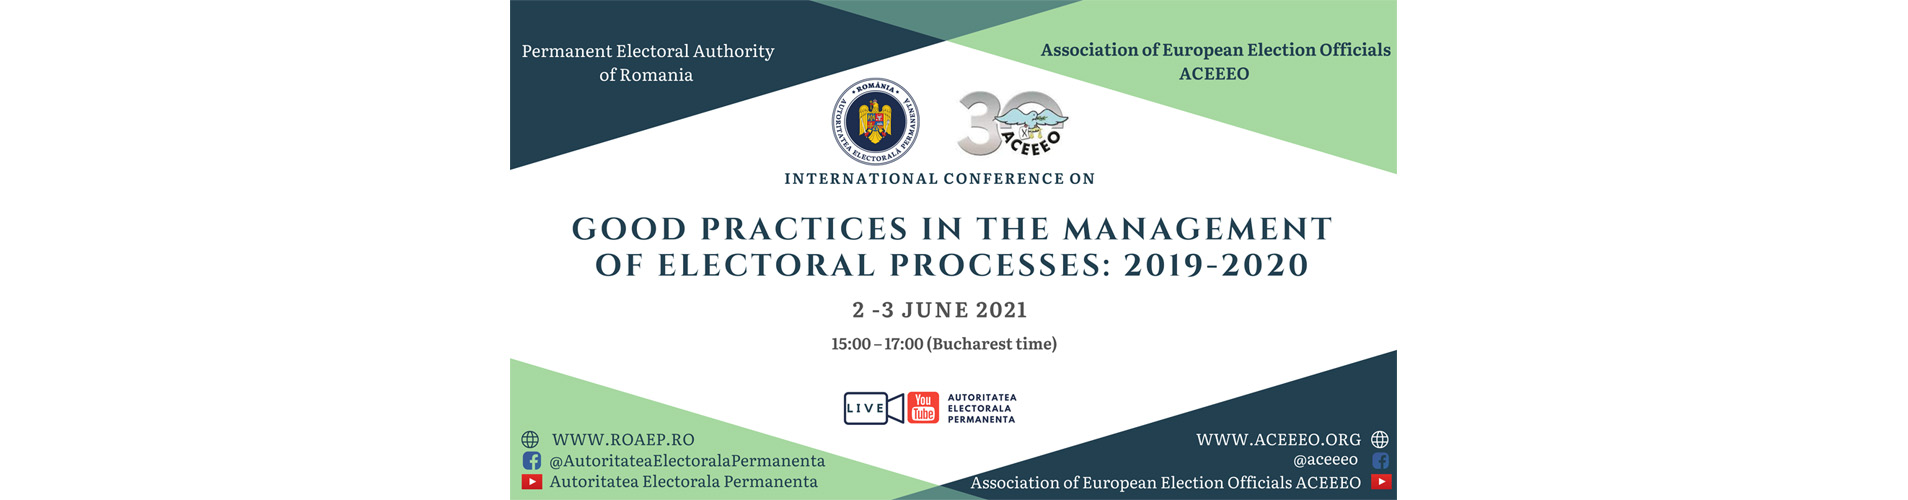 Good practices in the management of electoral processes: 2019-2020